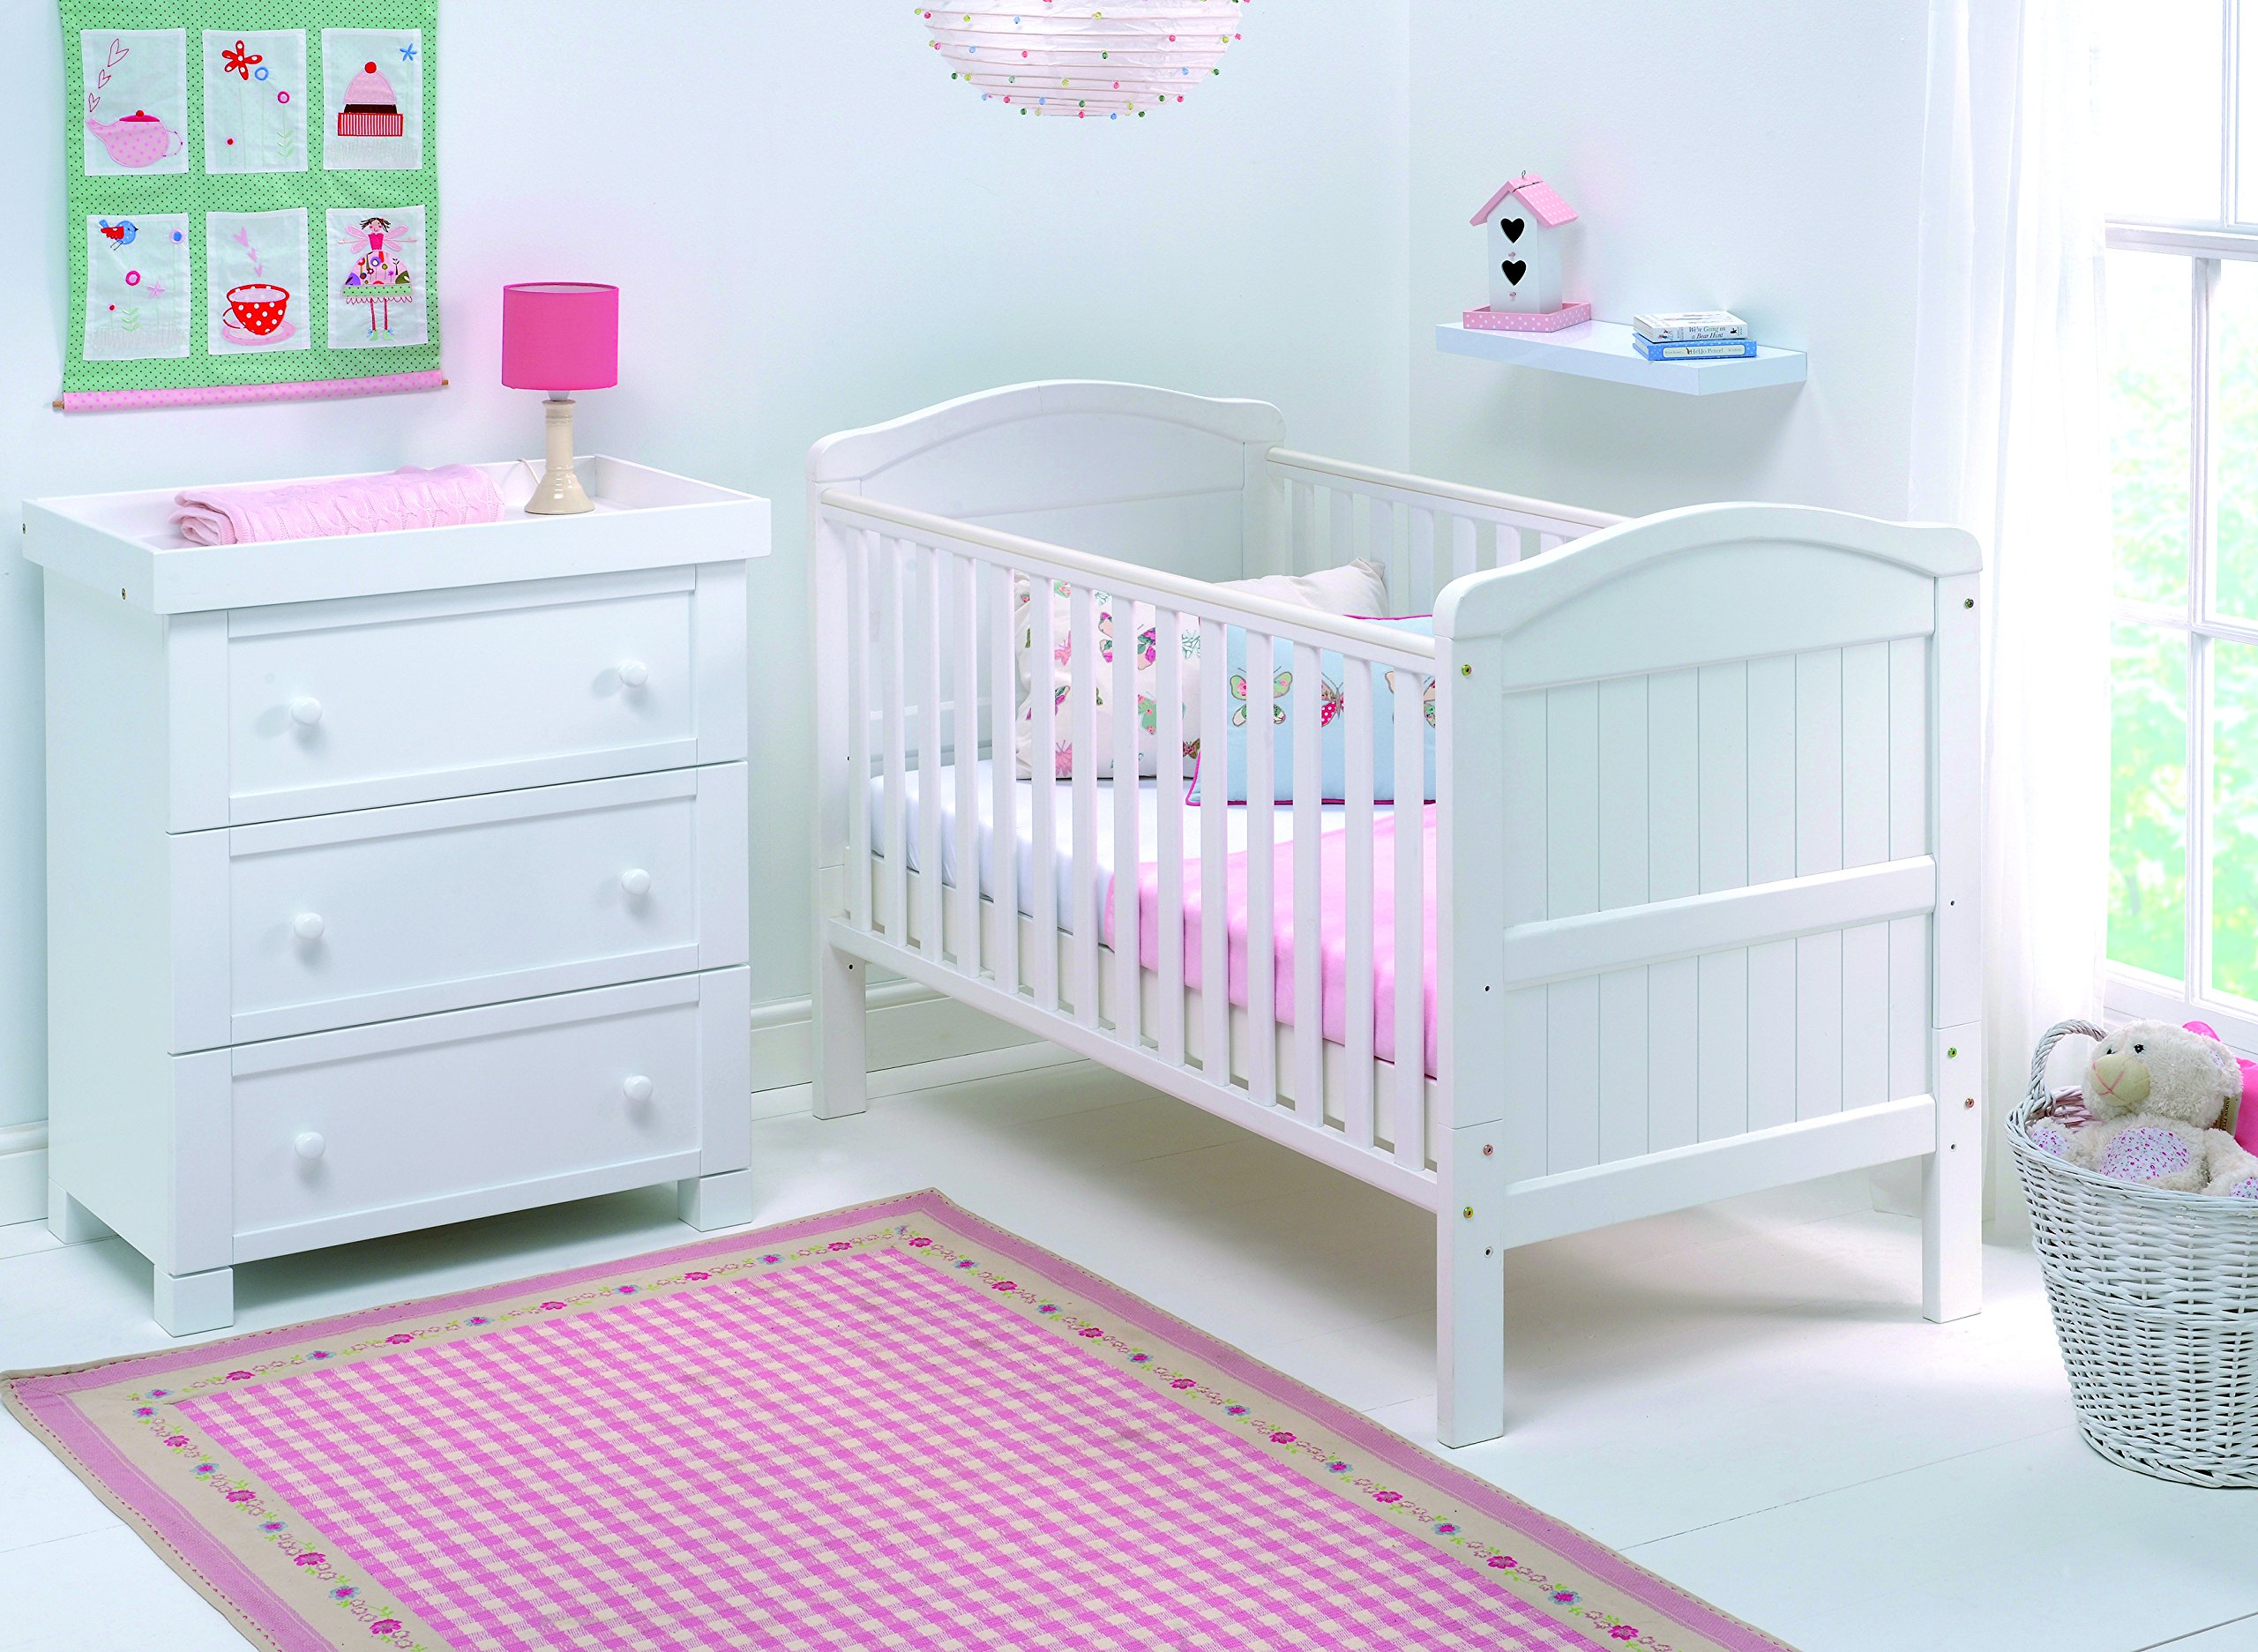 East Coast Country Cot Bed (White) East Coast Nursery Ltd 2 protective teething rails 3 base heights 2 fixed sides 3